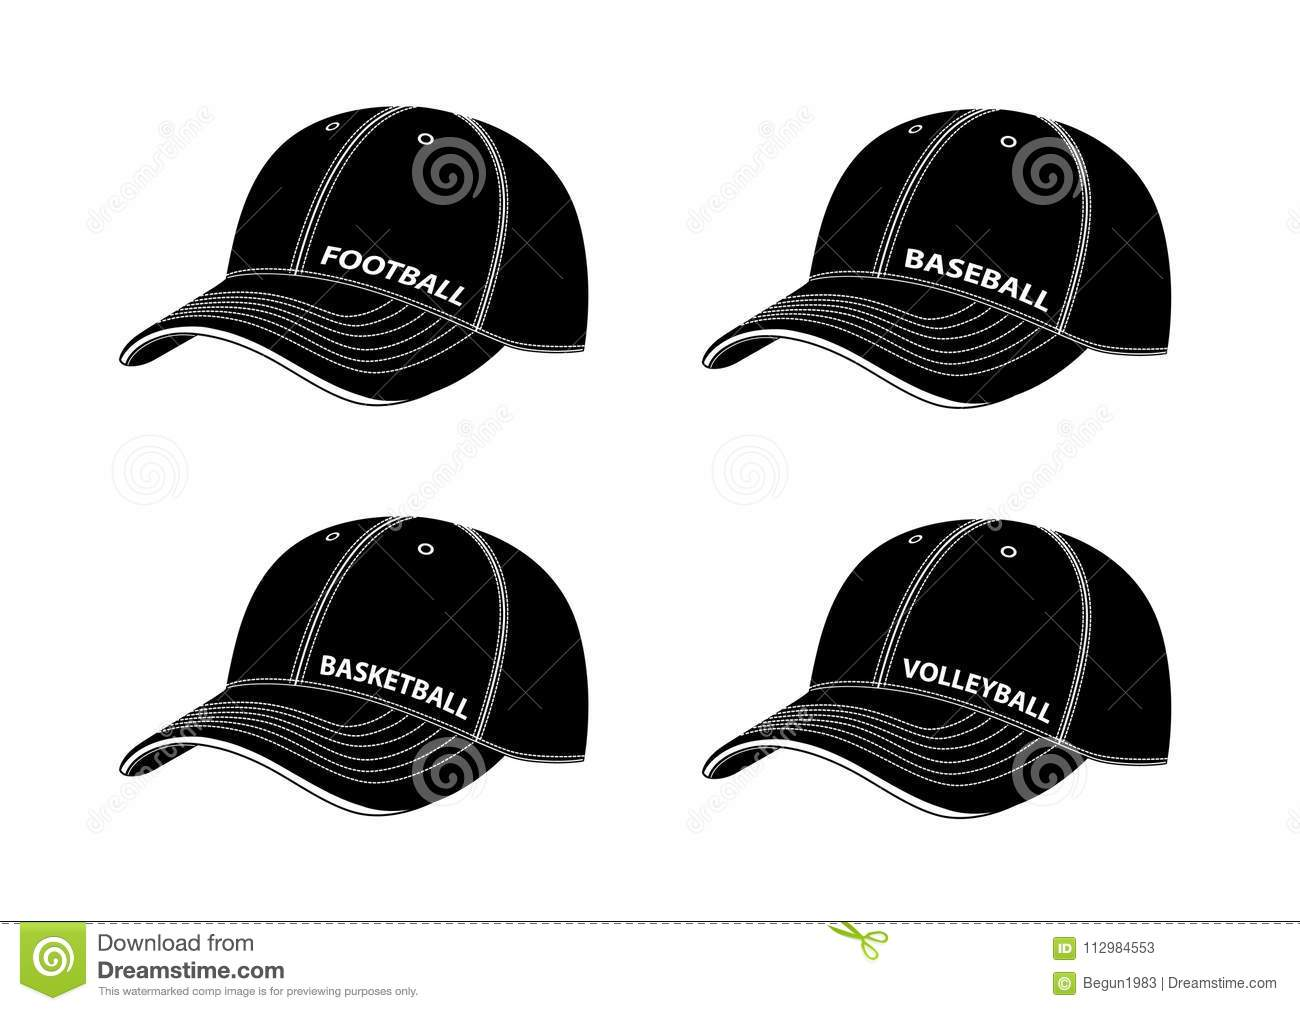 Baseball caps with inscriptions of different sports.Vector illustration on a white background.